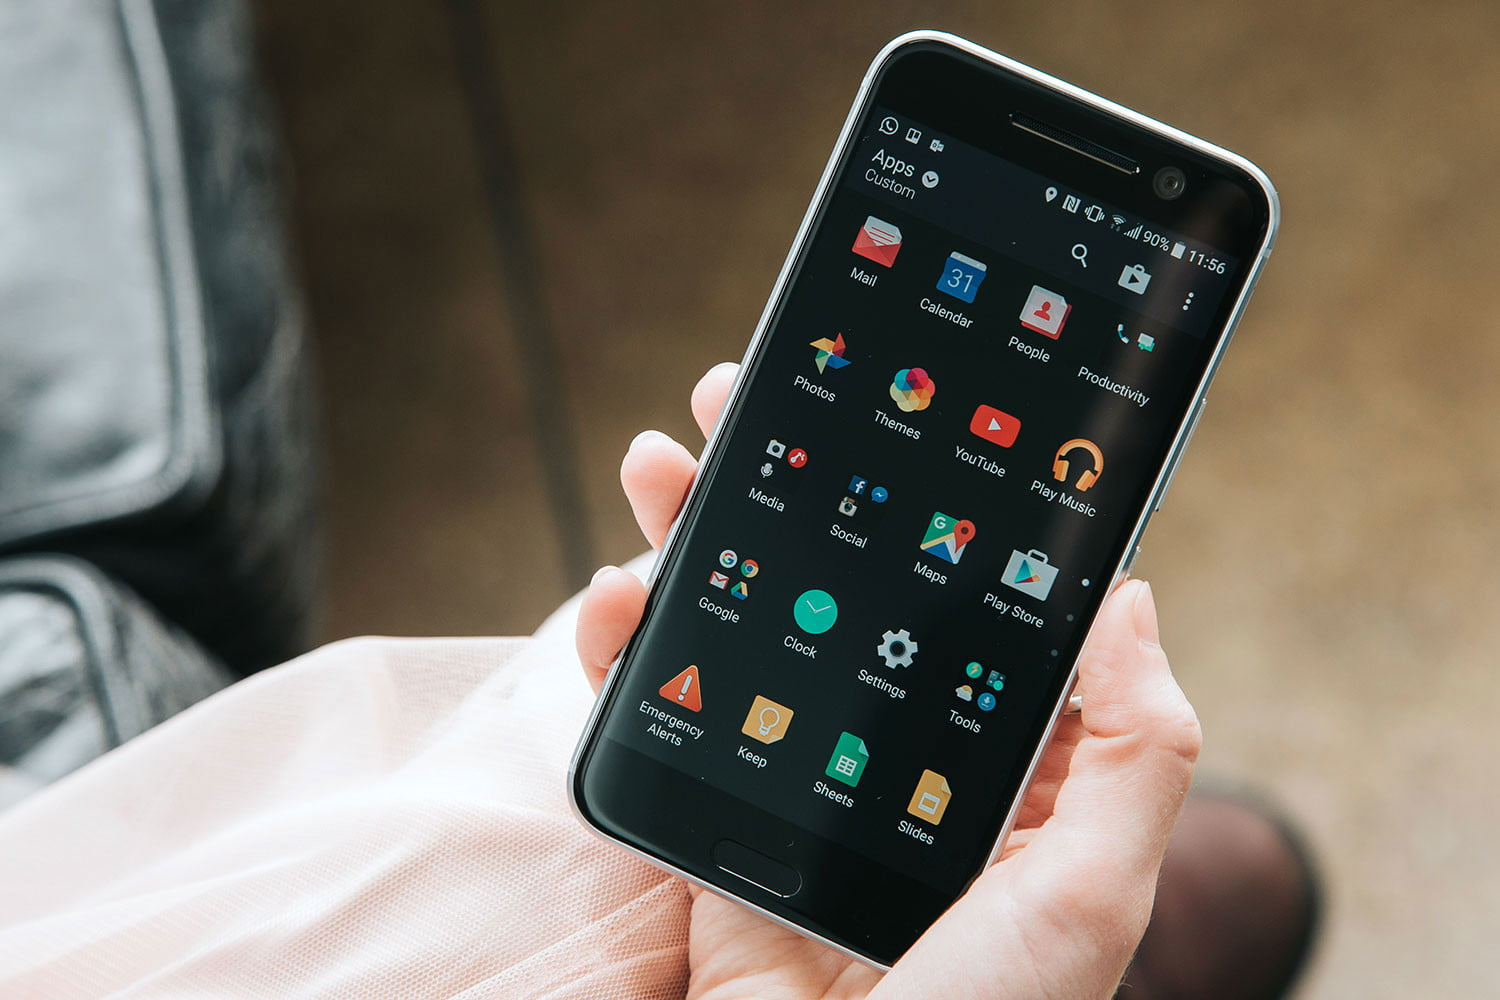 htc 10 t mobile online price